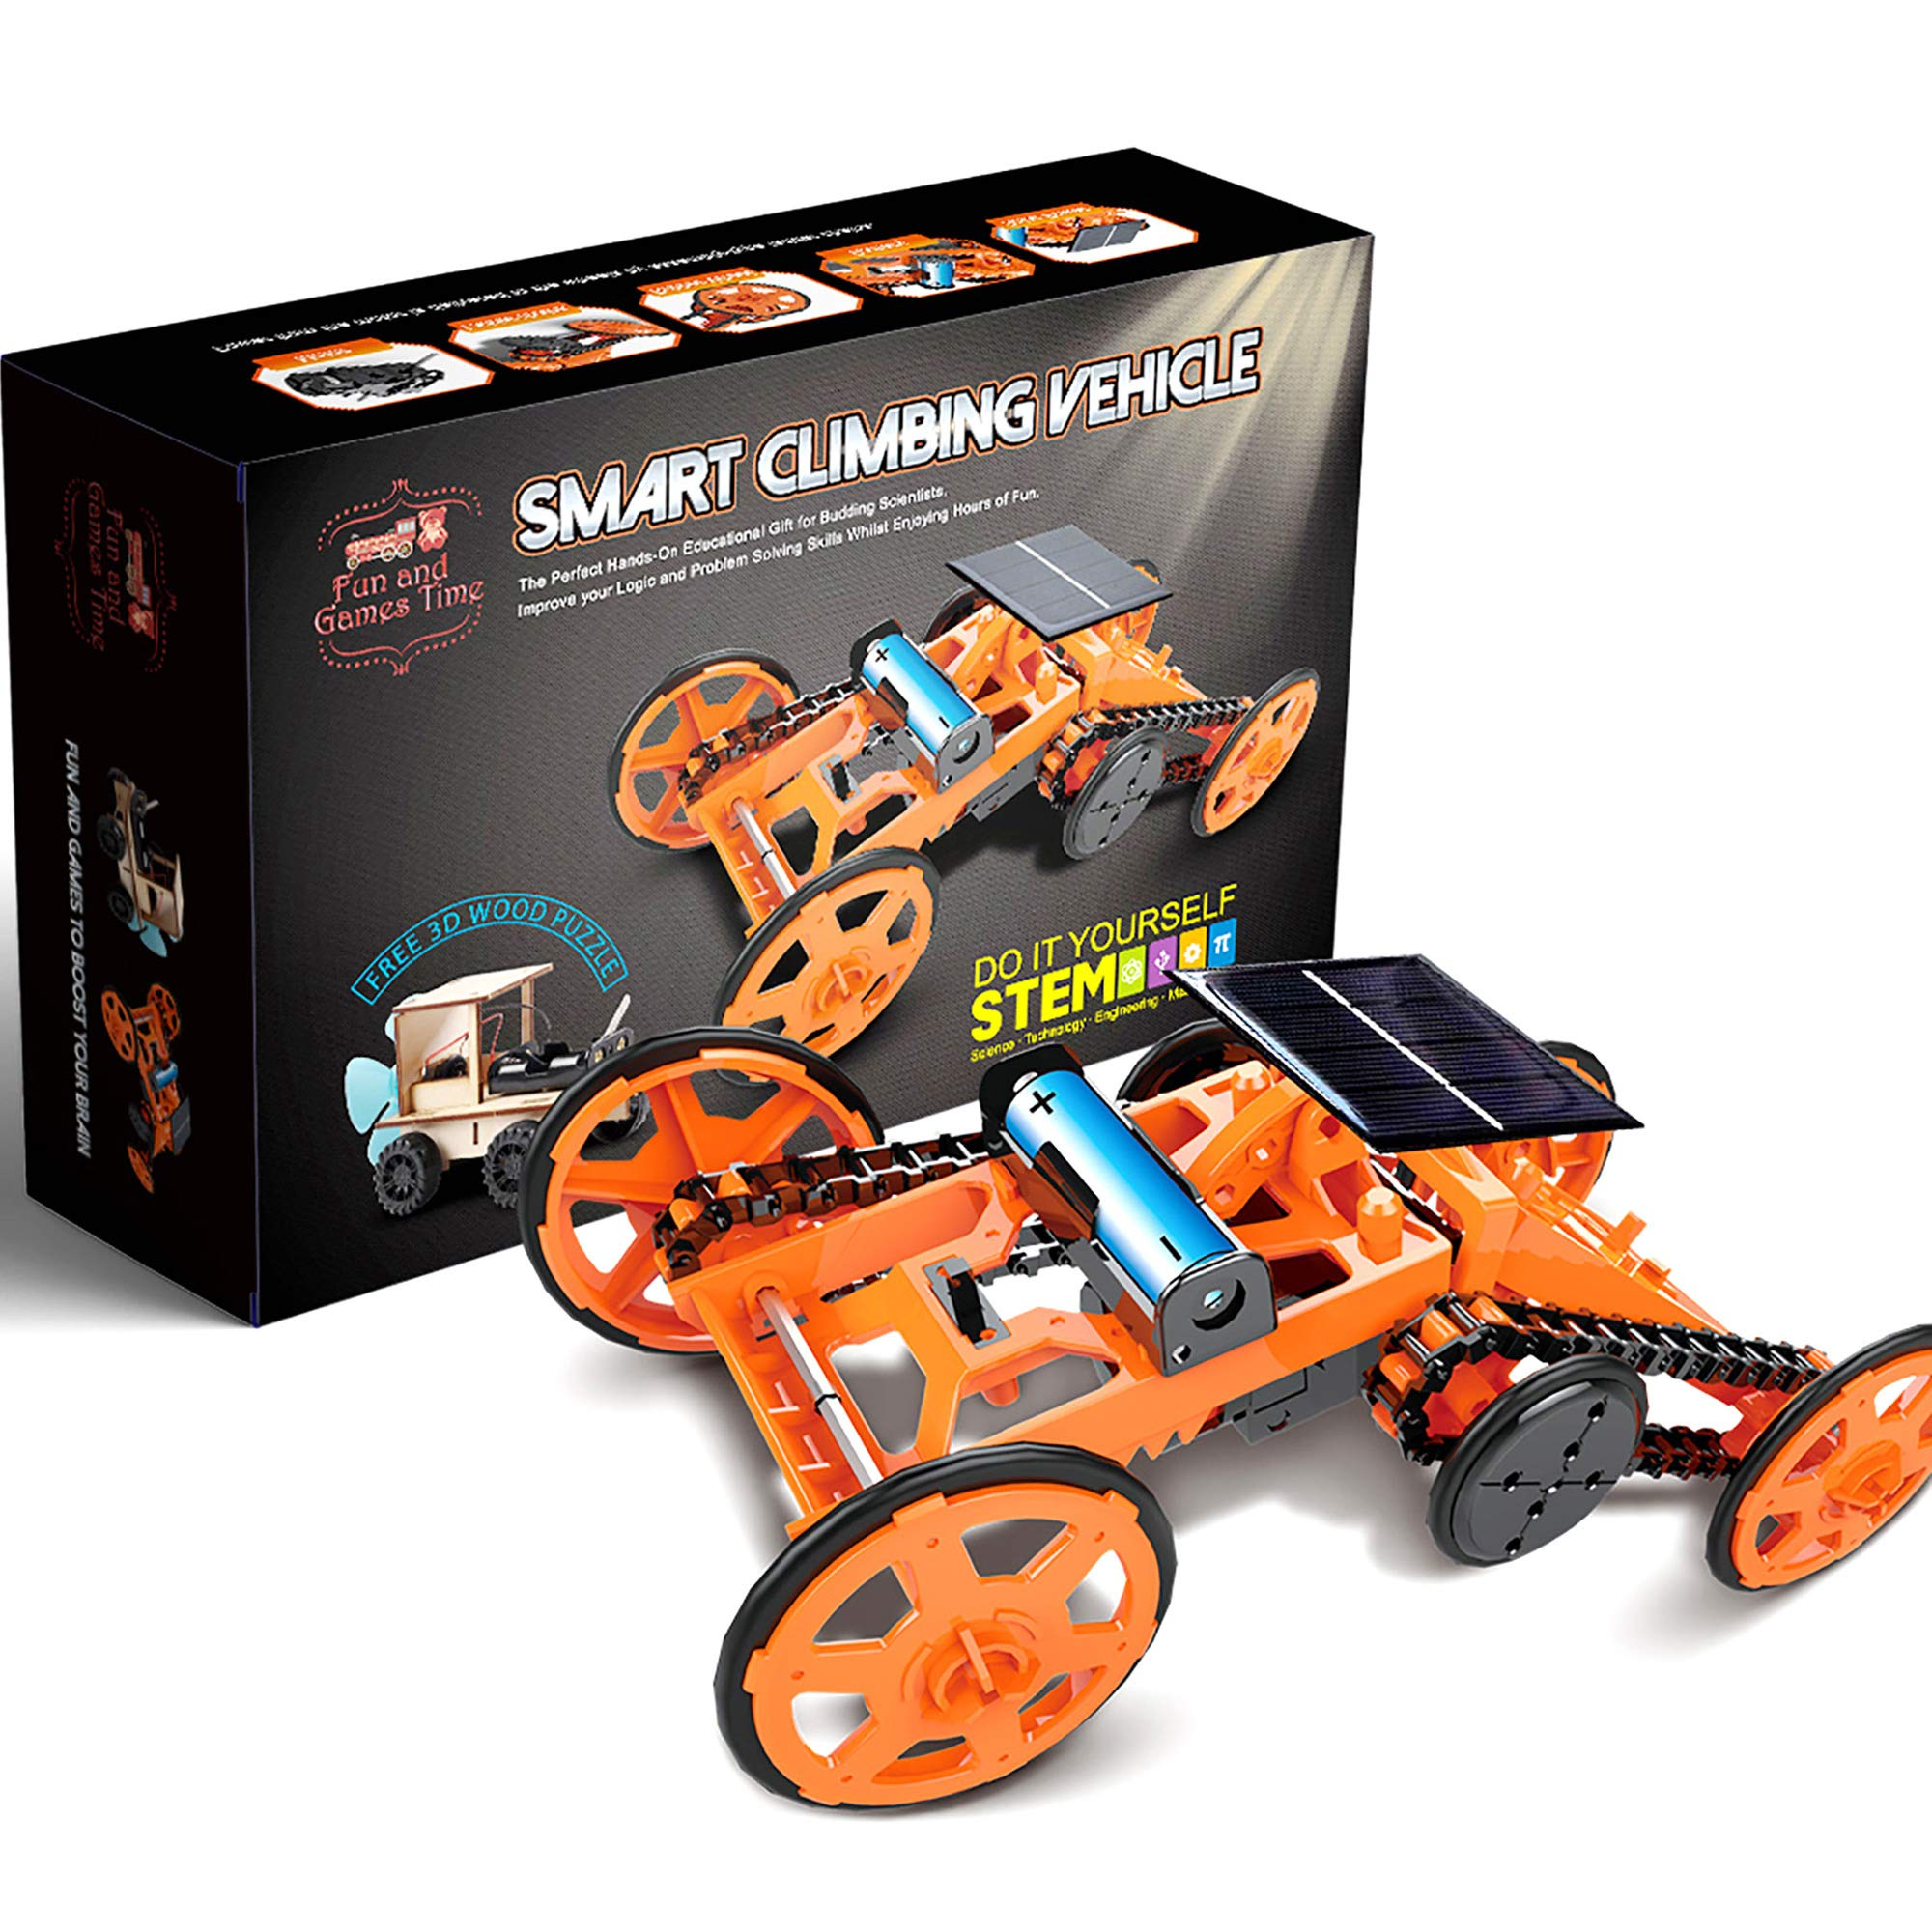 BEST Smart Climbing Vehicle, Educational STEM Learning Toy Assembly Kit, Solar Powered Mechanical Circuit Building 4WD Robotic Motor Car Set for Science Project, Engineering, Birthday & Christmas Gift - wiihuu